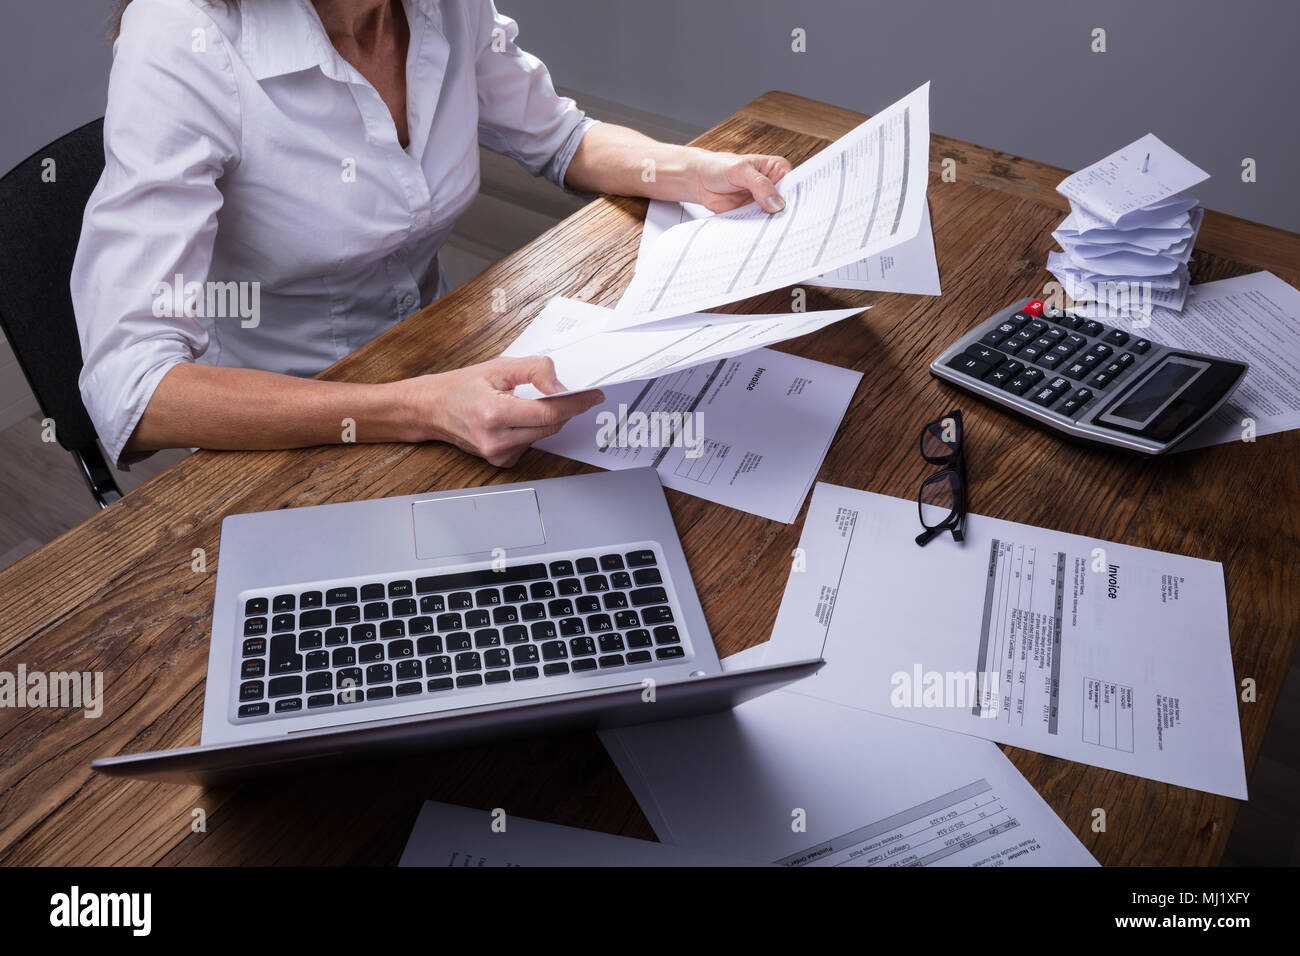 Elevated View Of Businessperson's Hand Holding Documents Over Wooden Desk - Stock Image